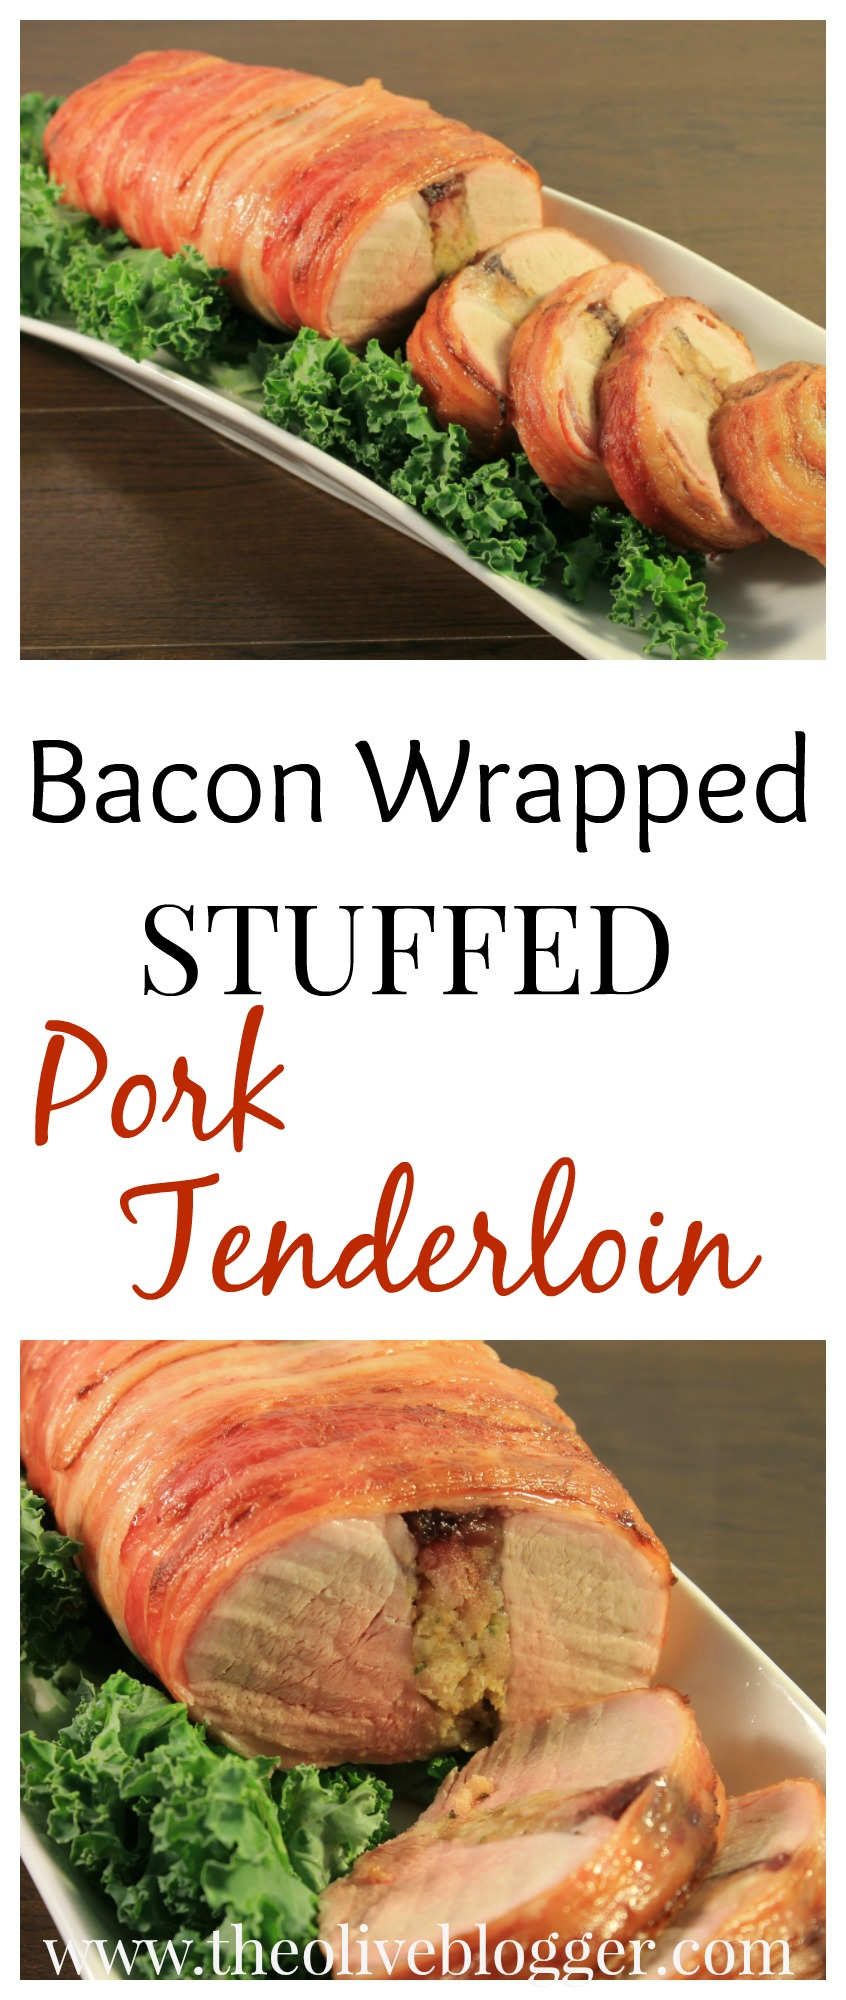 Bacon Wrapped Stuffed Pork Tenderloin The Olive Blogger Recipes